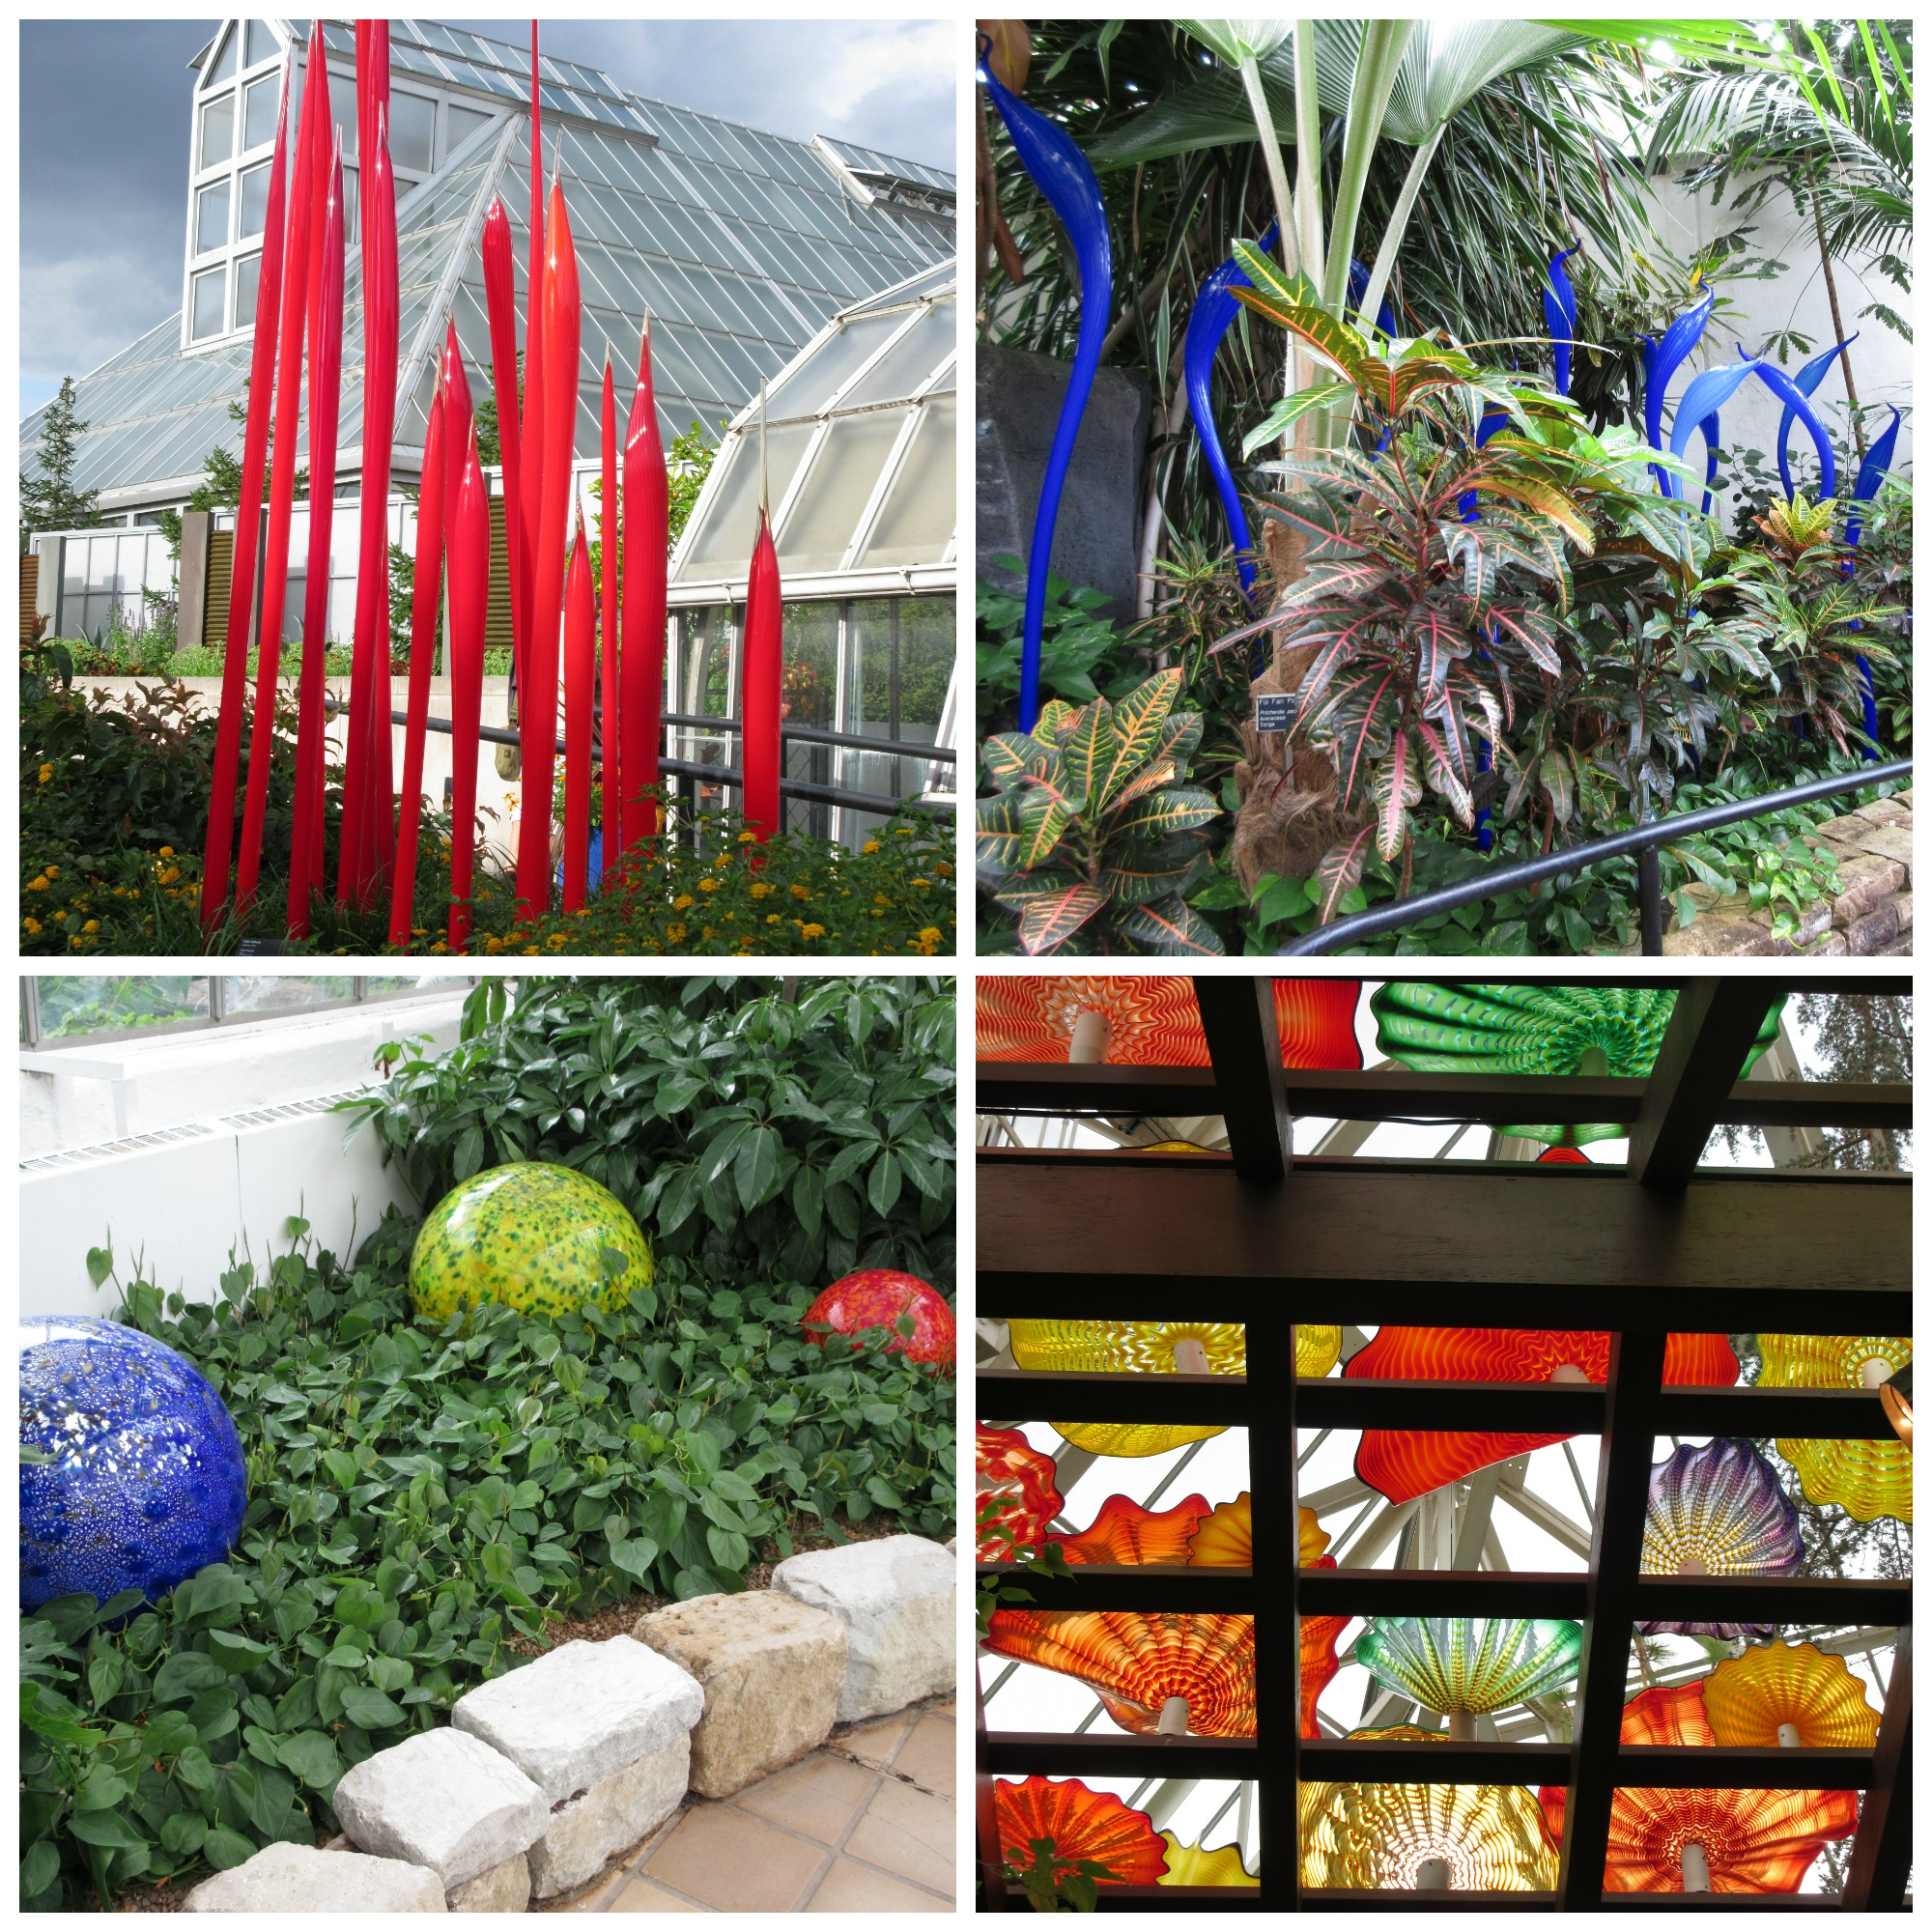 Superbe Chihuly Pieces At The Franklin Park Conservatory And Botanical Gardens,  Columbus, Ohio